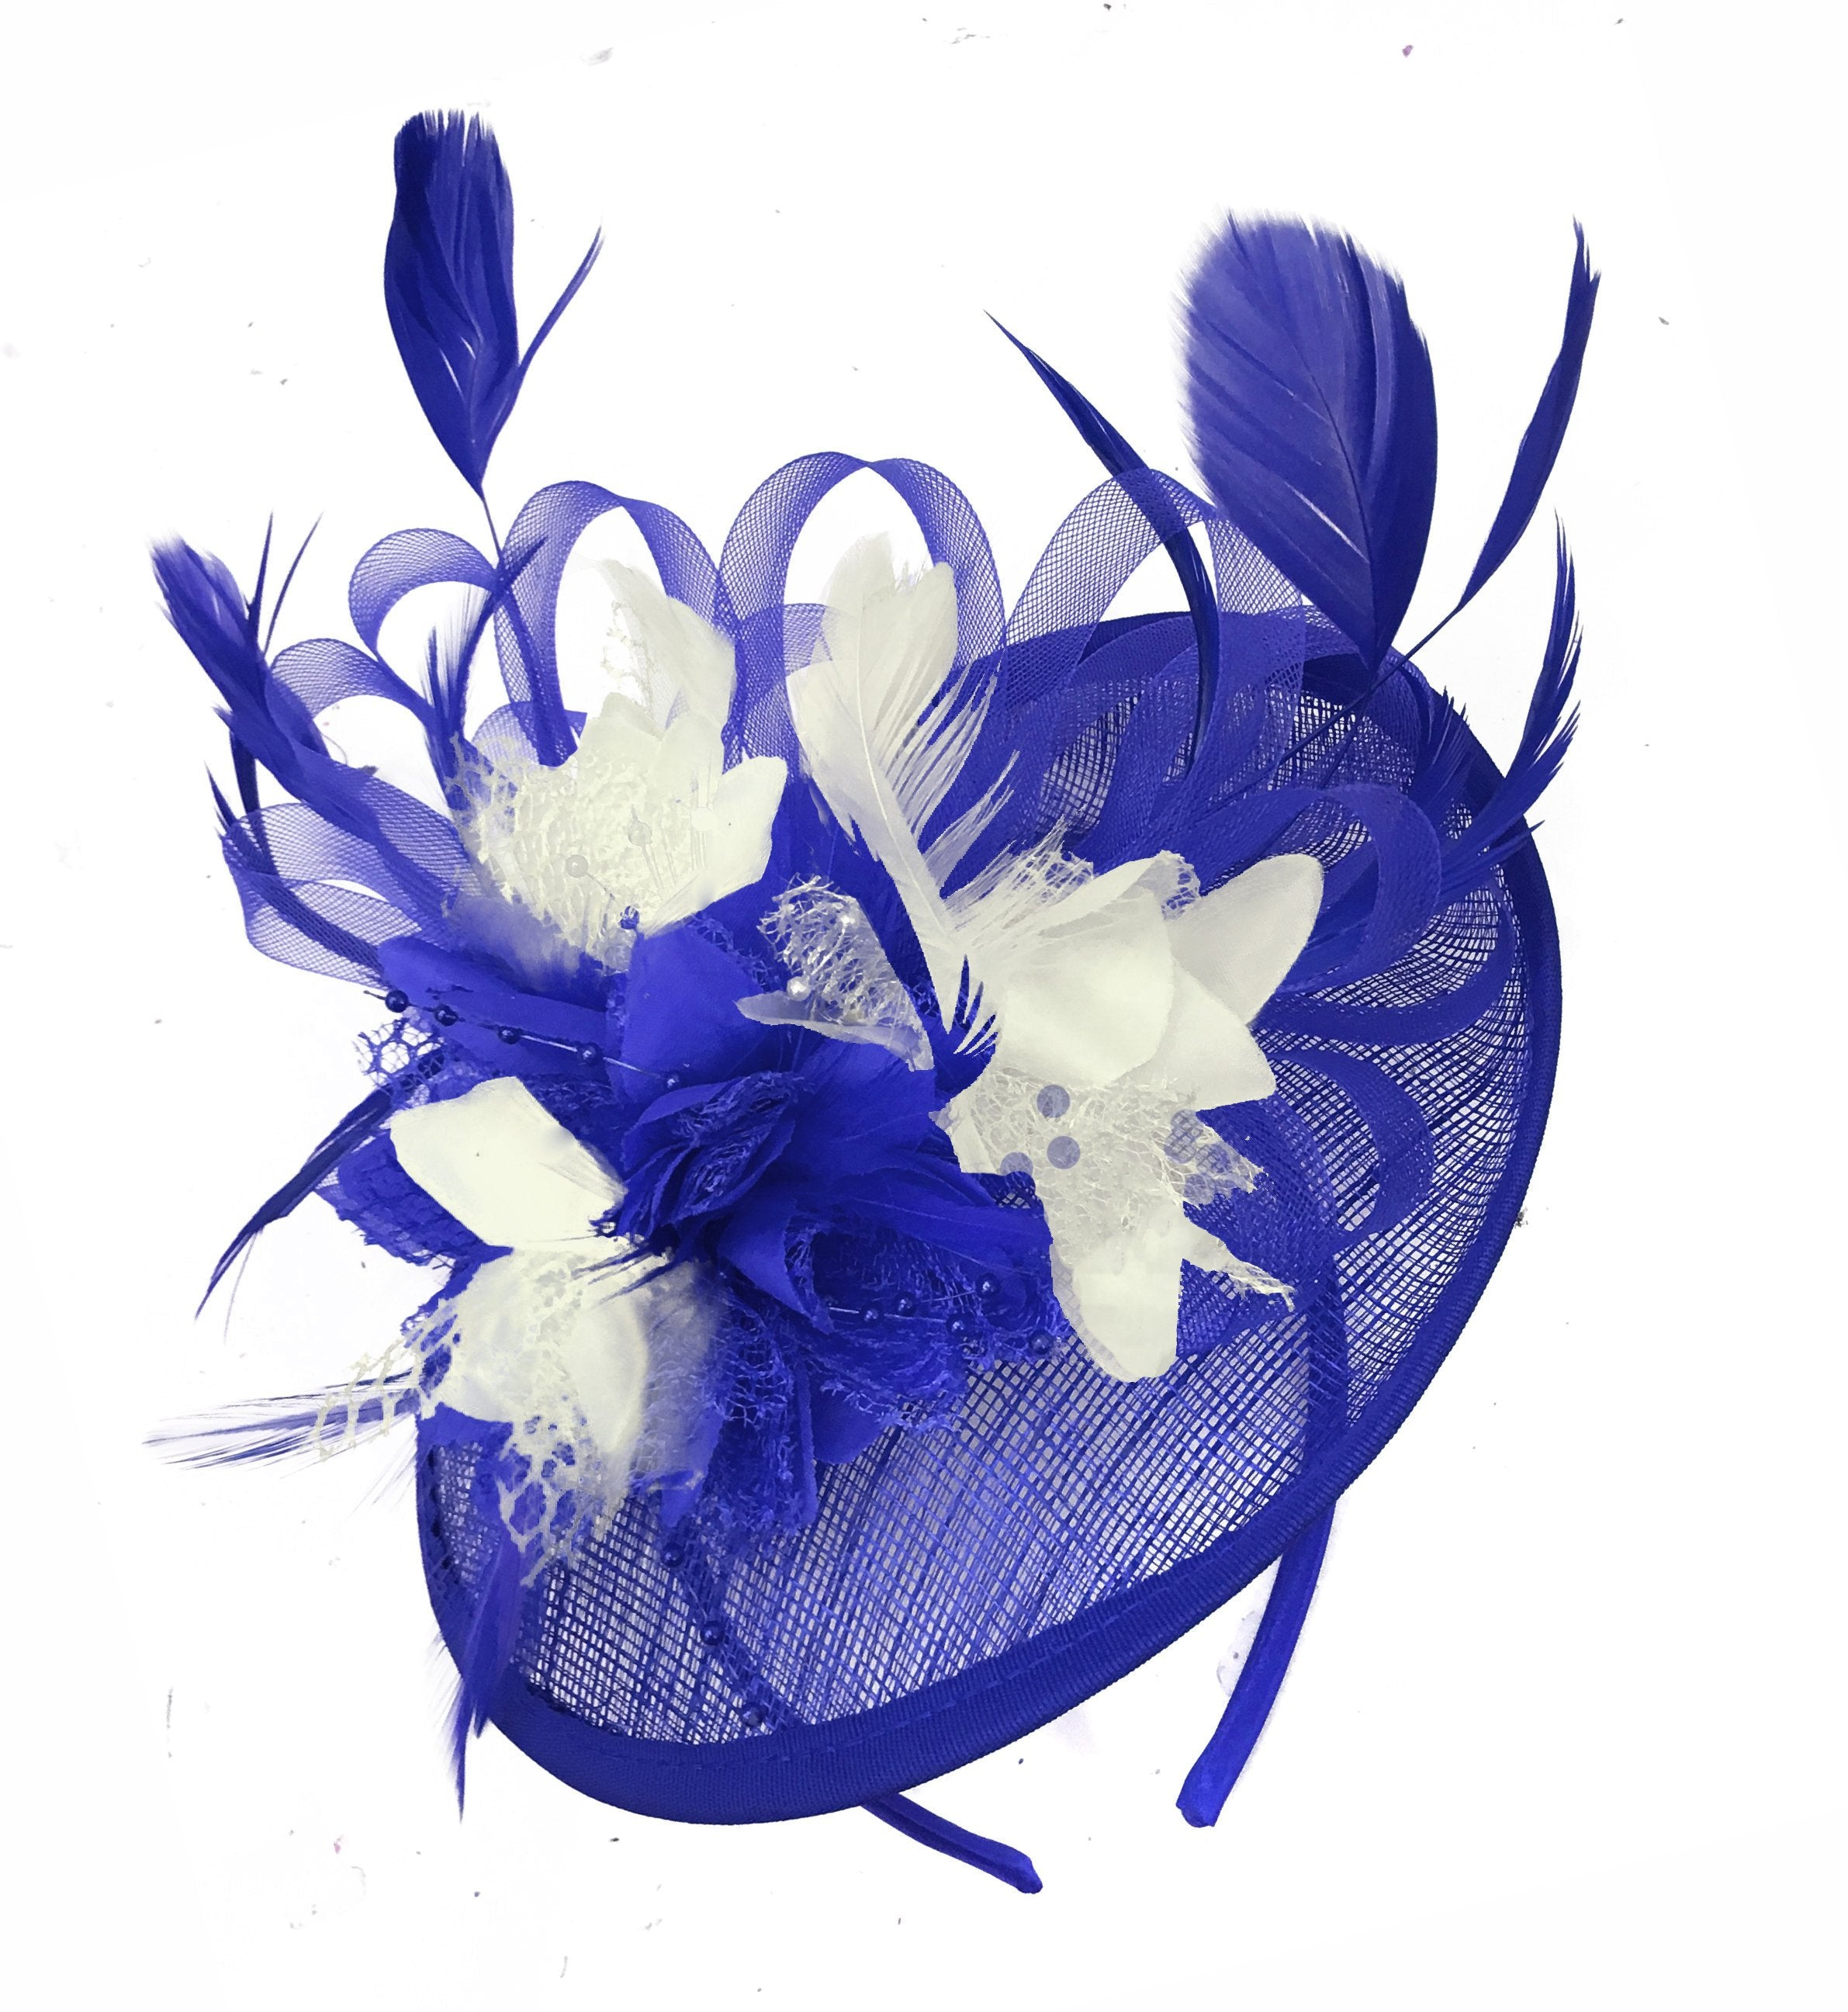 Caprilite Blue and Cream Sinamay Disc Saucer Fascinator Hat for Women Weddings Headband